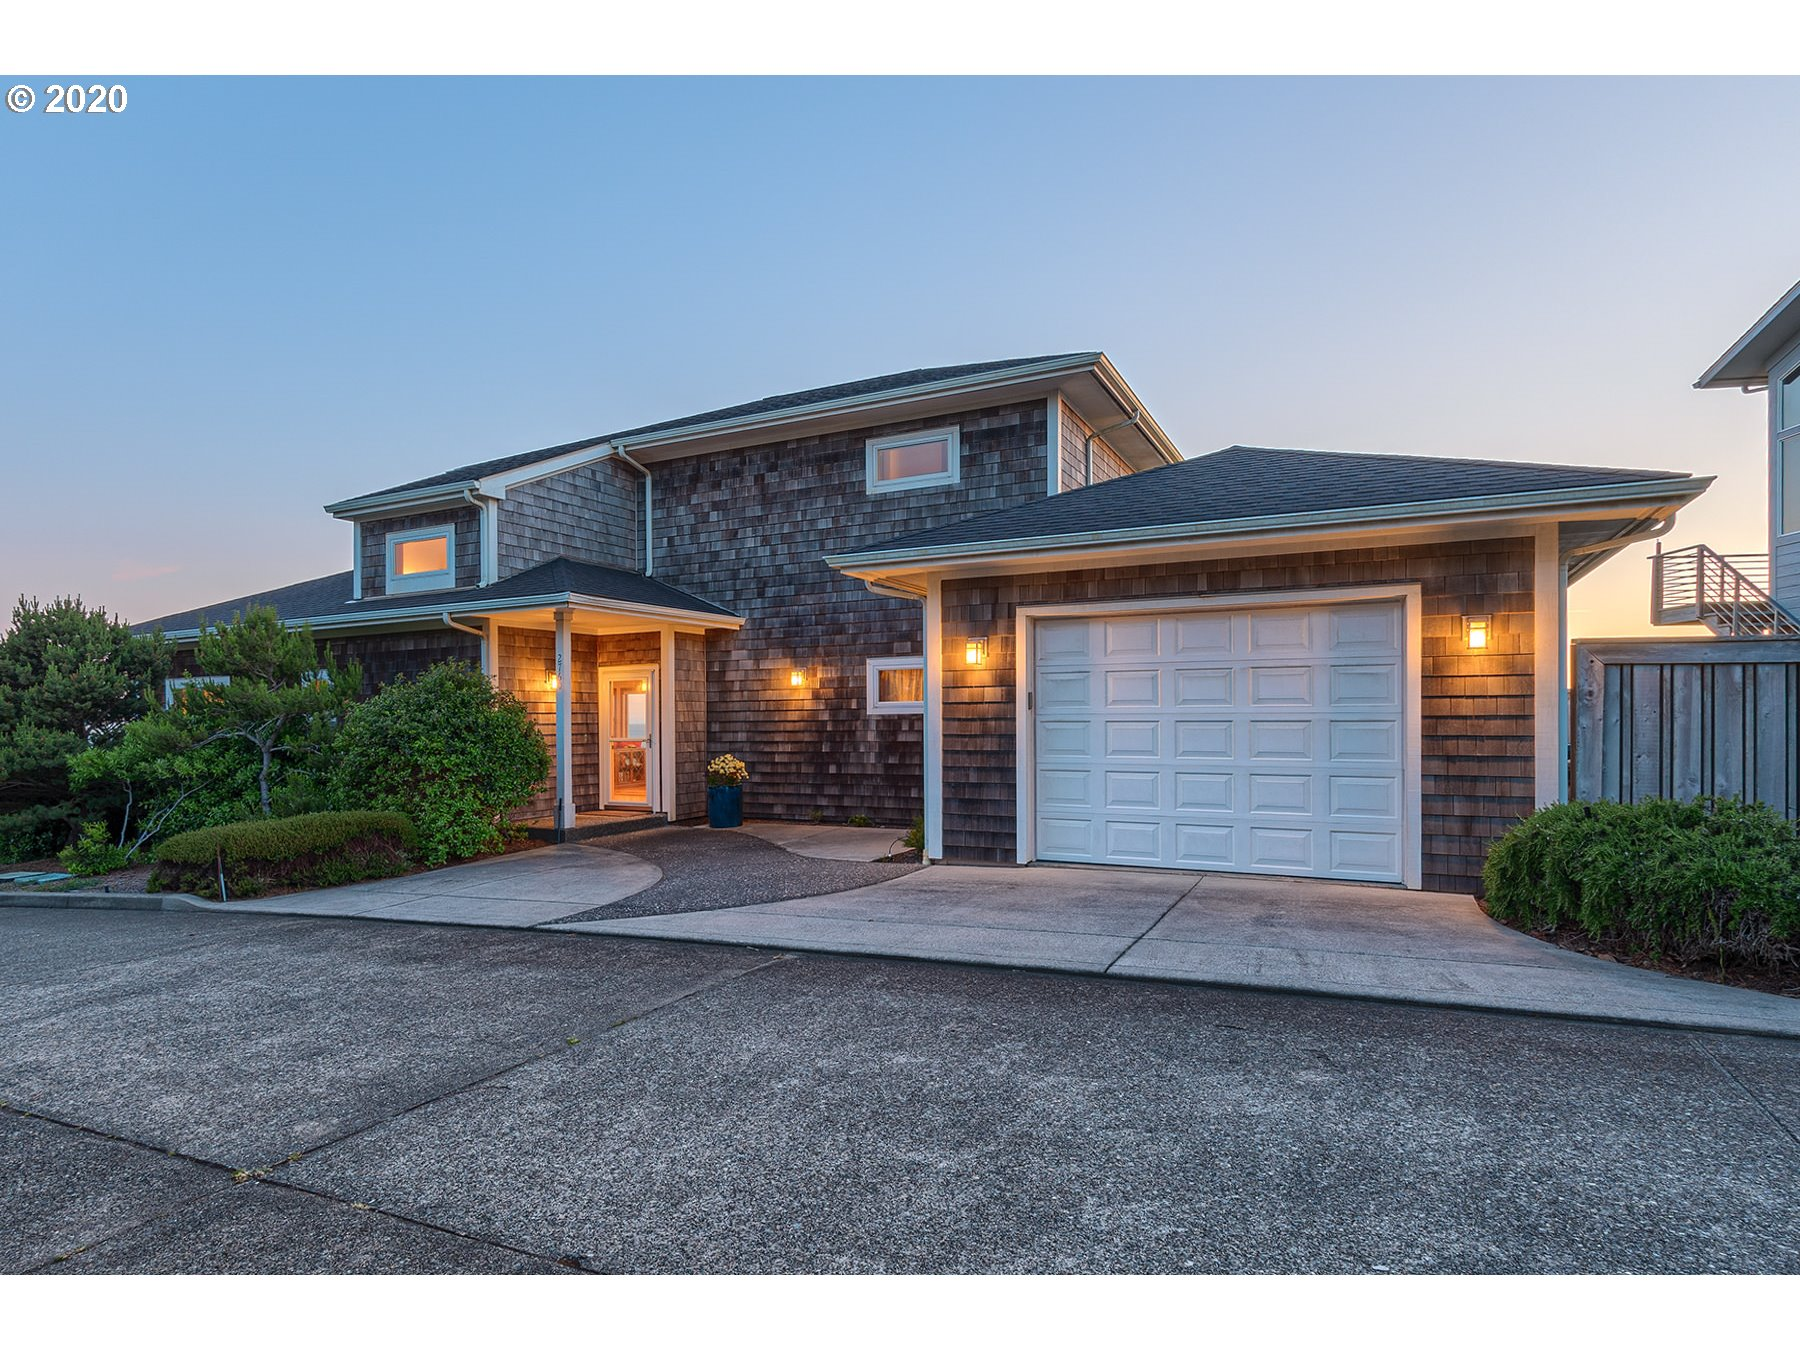 2760 Whale Watch Way, Bandon, OR 97411